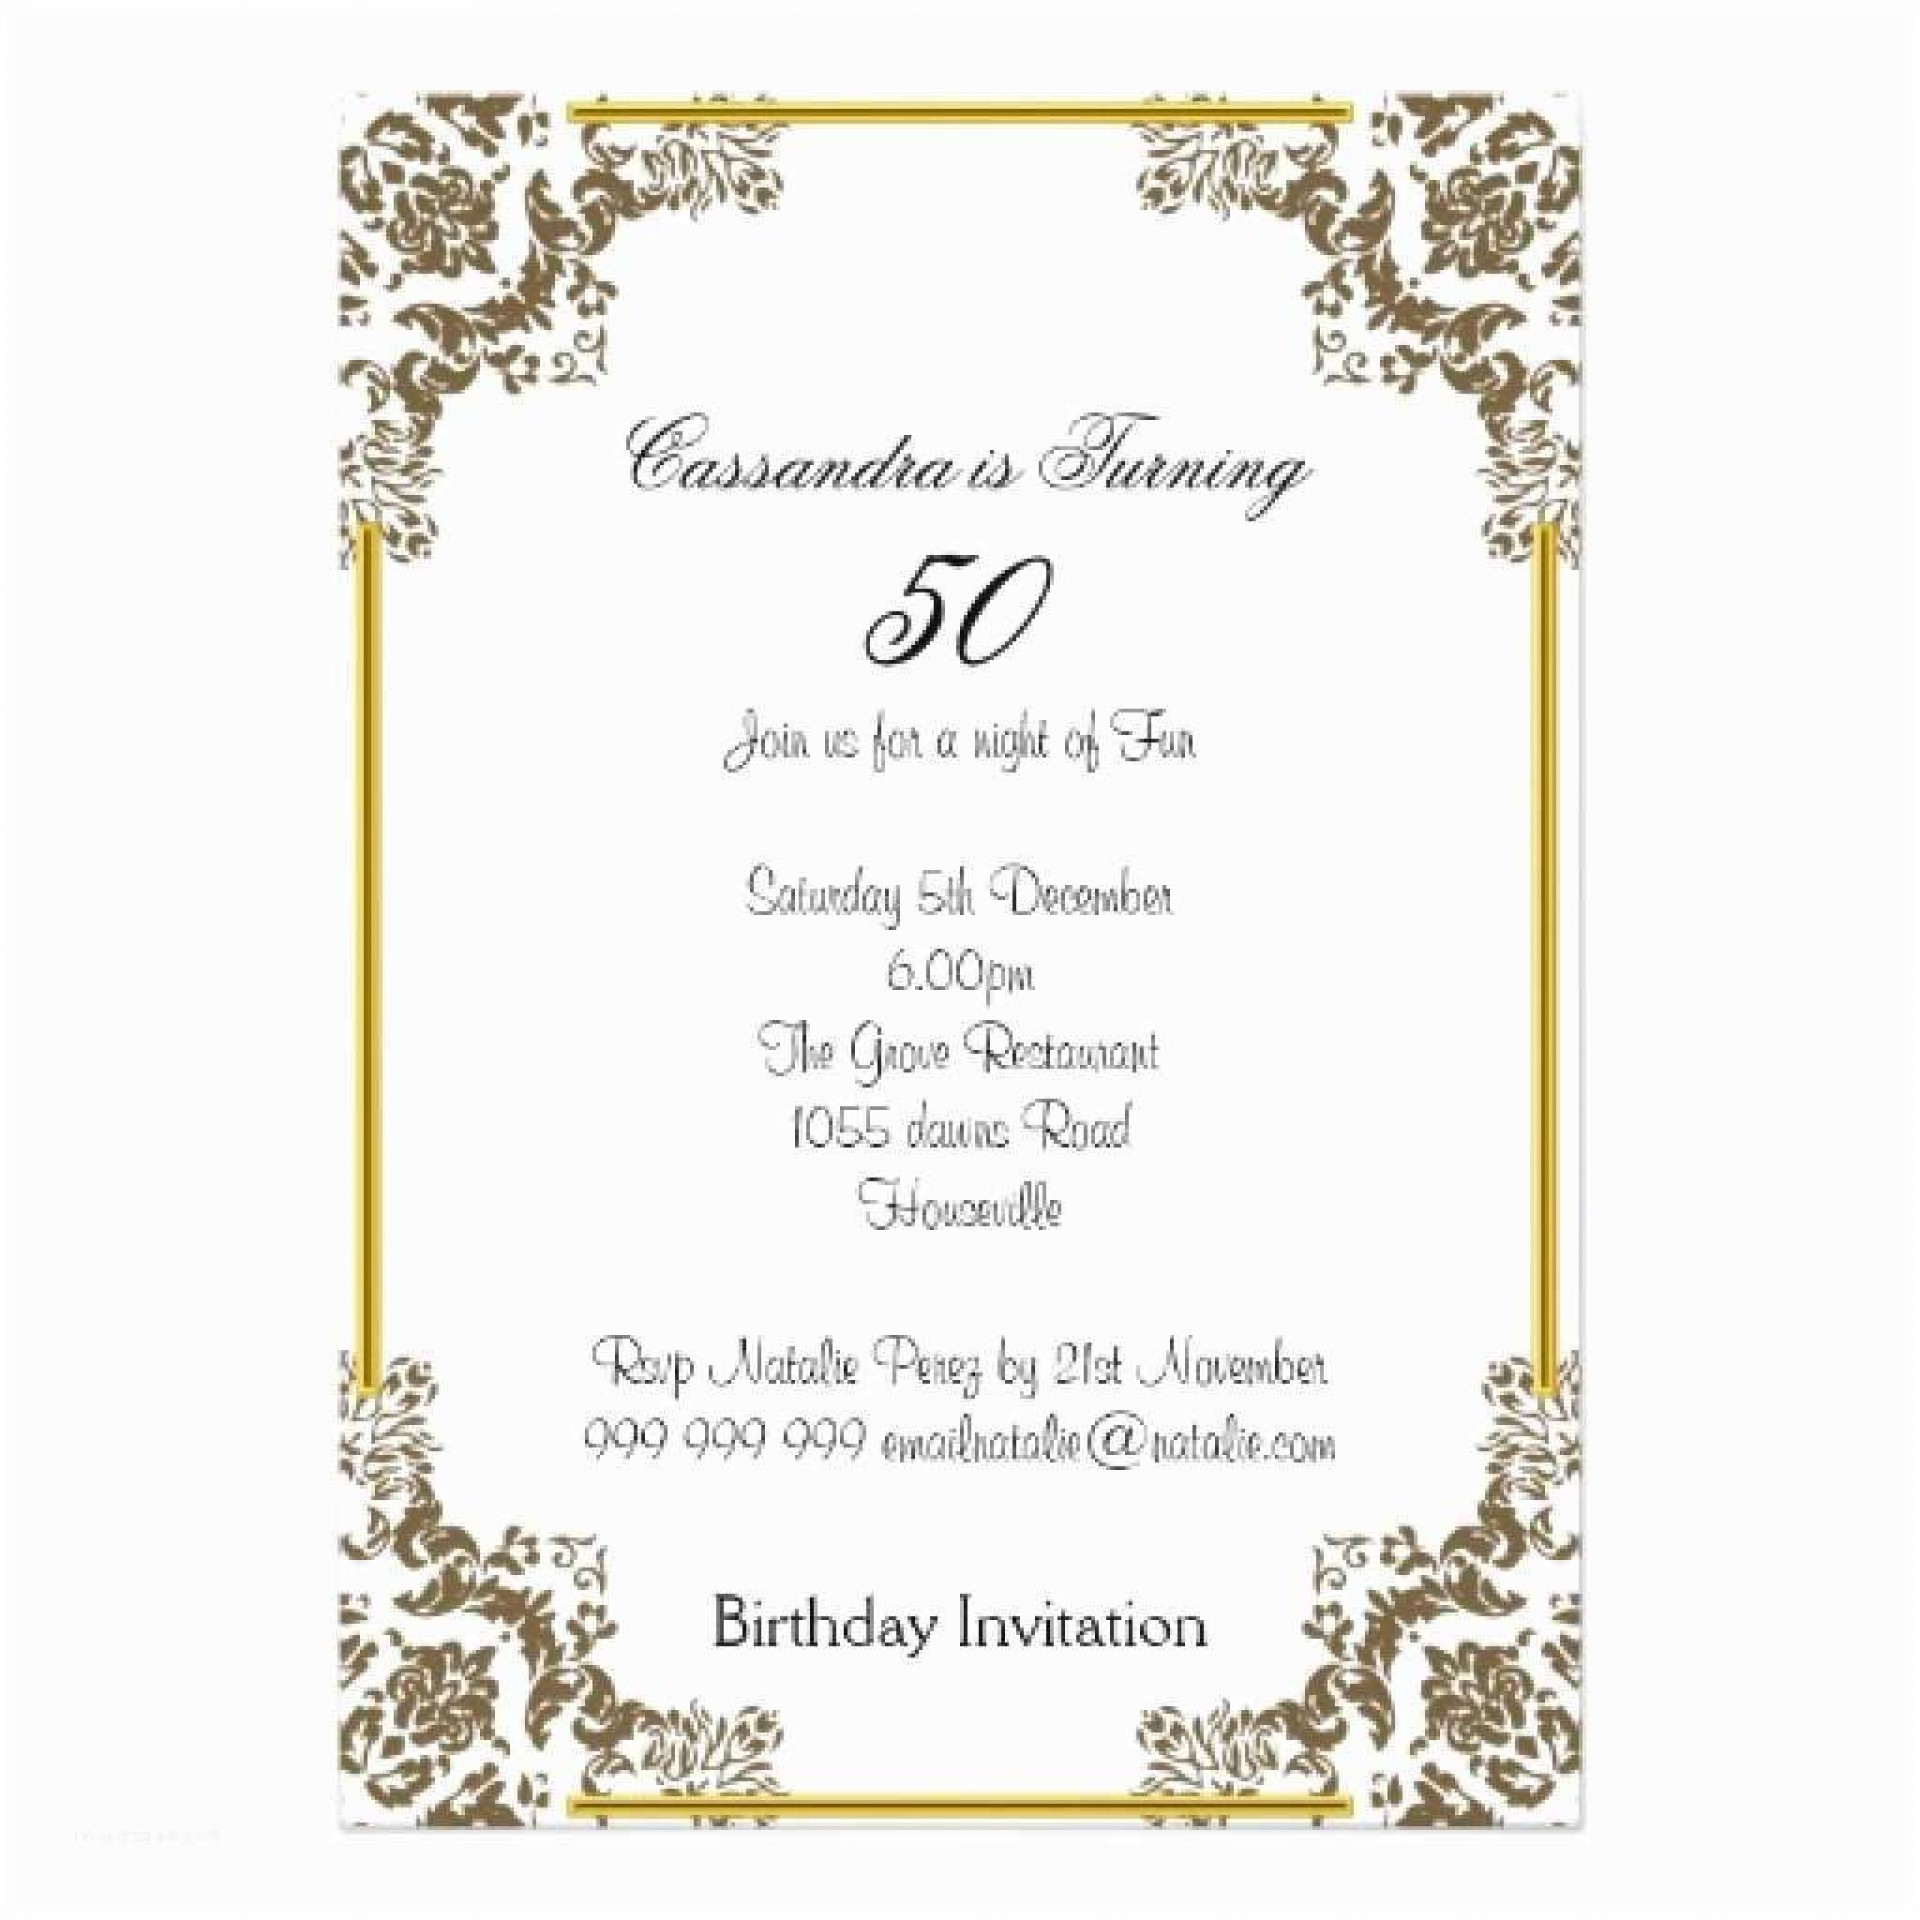 007 Stunning 60th Birthday Invitation Template High Resolution  Card Free Download1920